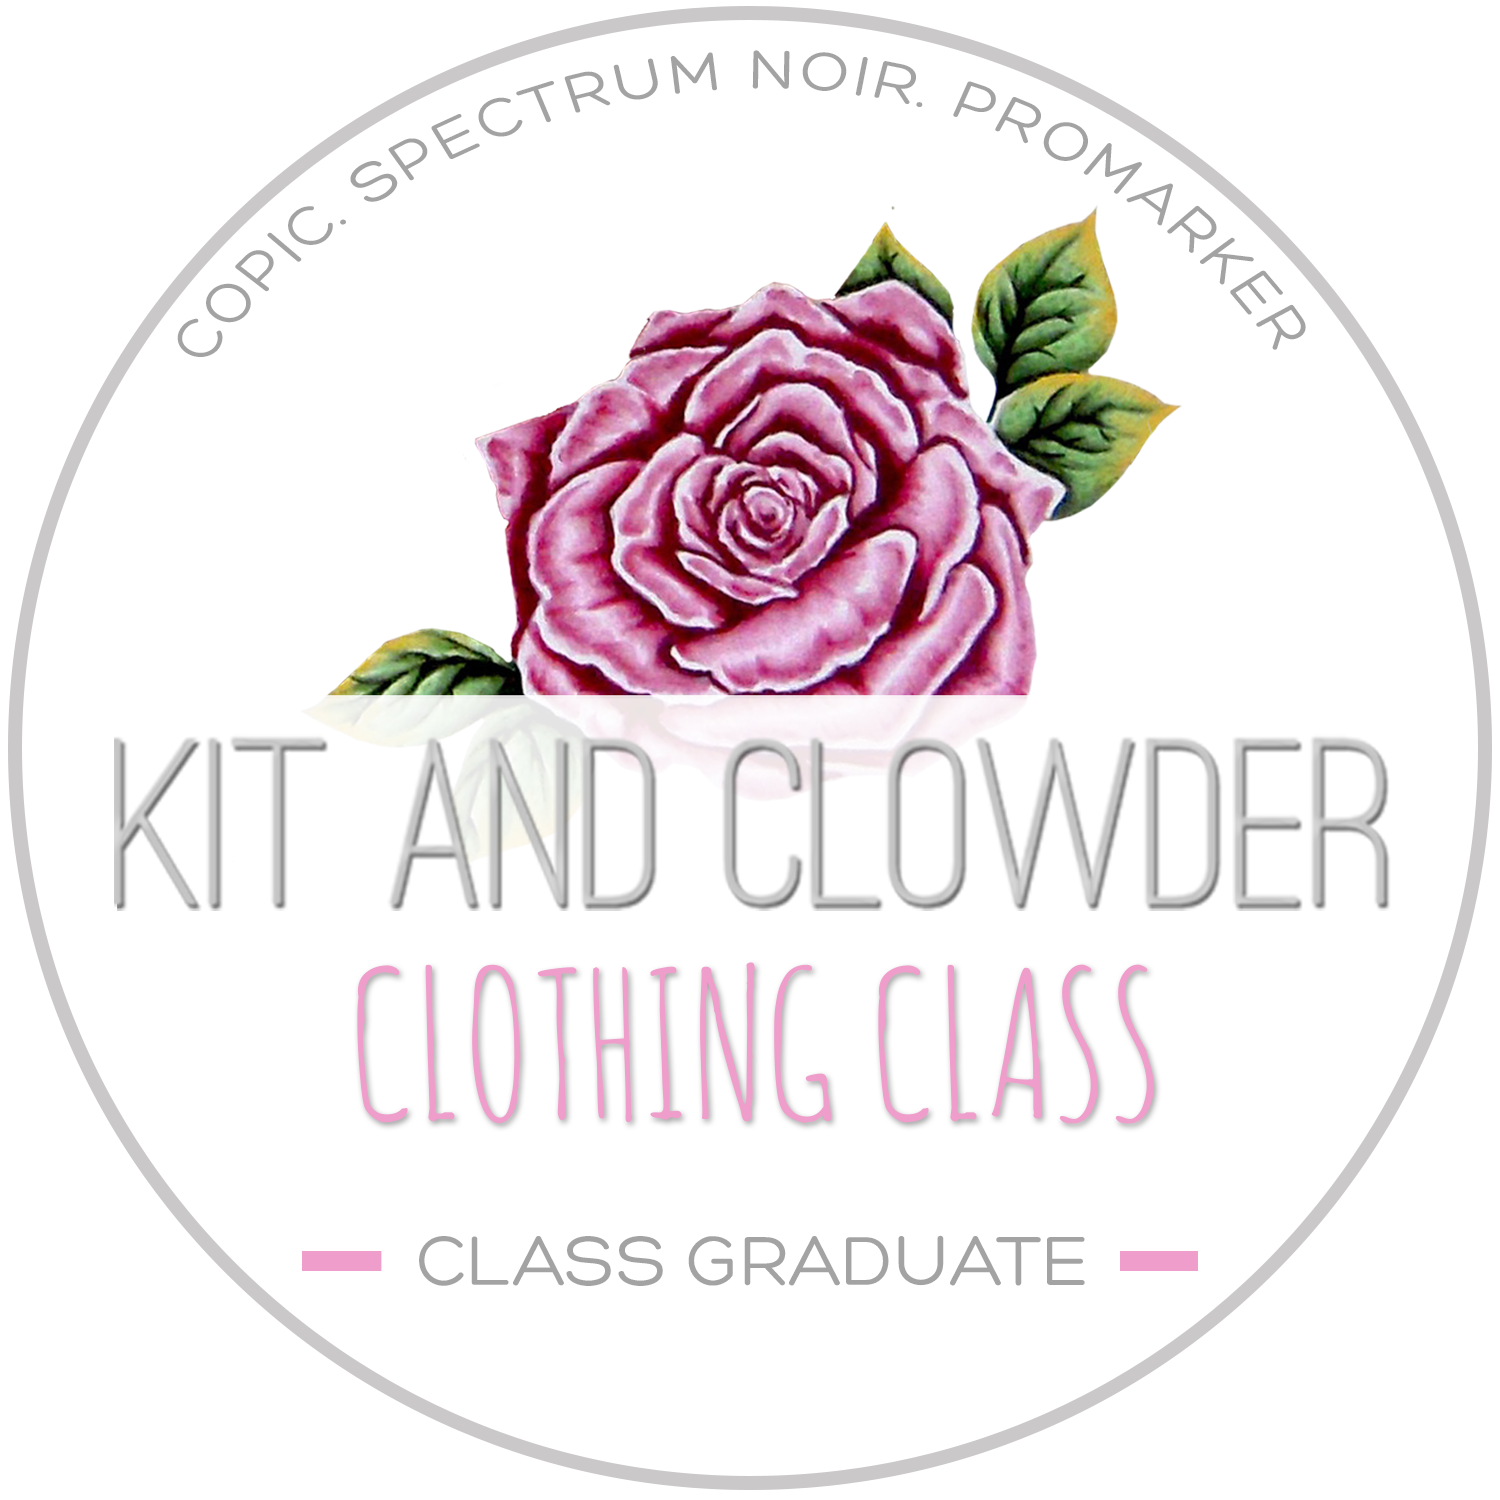 Kit and Clowder Clothing Class